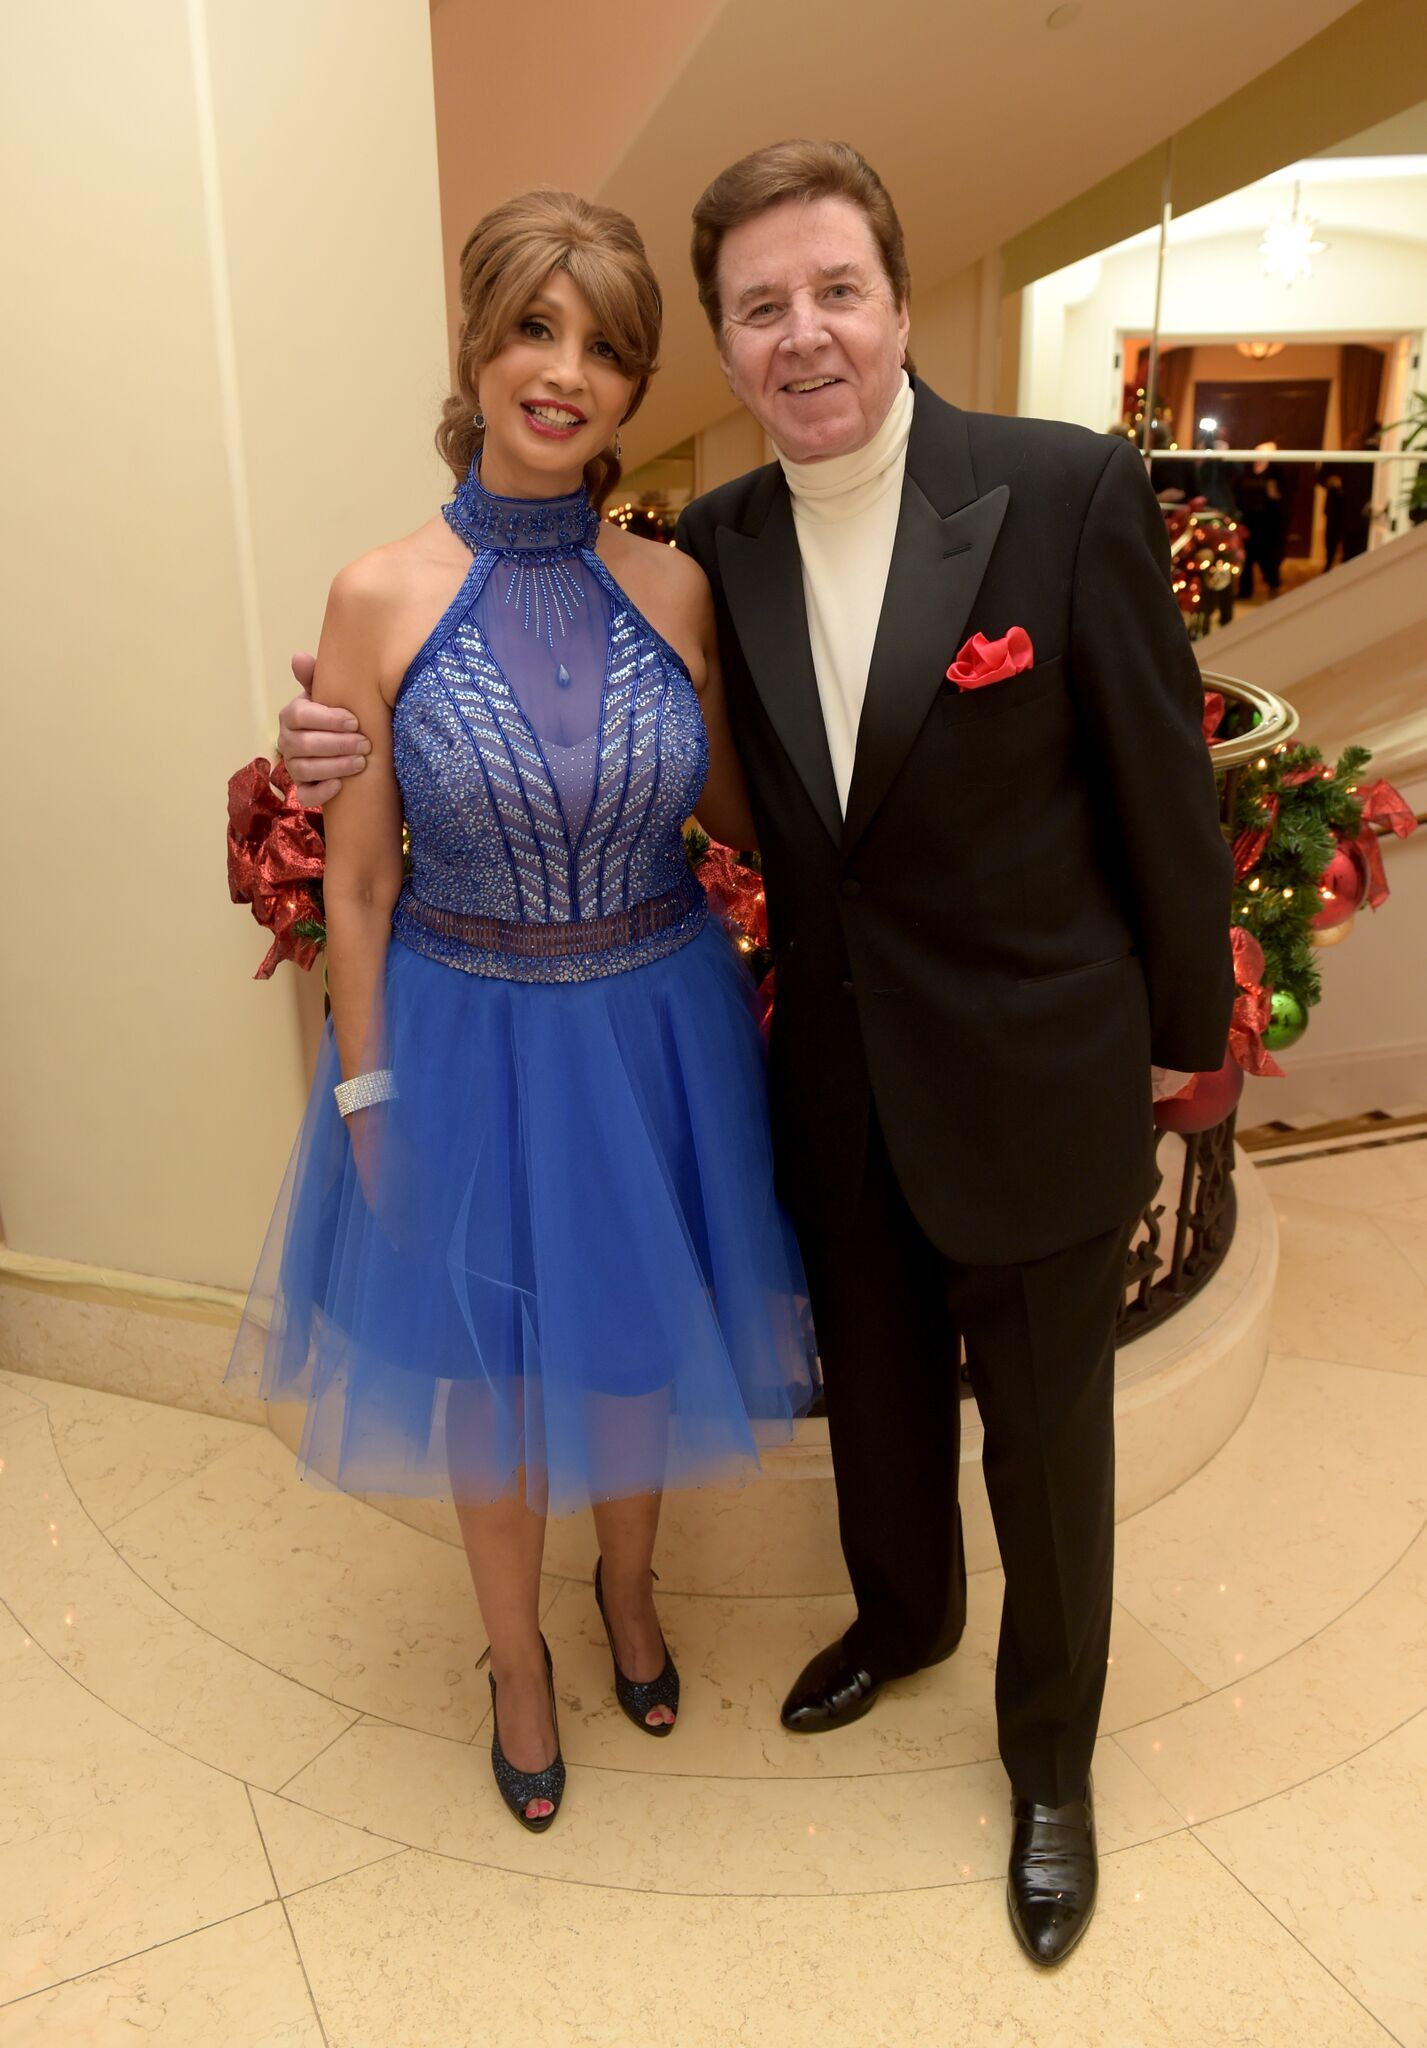 Brigitte Sherman (L) and singer Bobby Sherman attend the Brigitte and Bobby Sherman Children's Foundation's 6th Annual Christmas Gala and Fundraiser | Getty Images